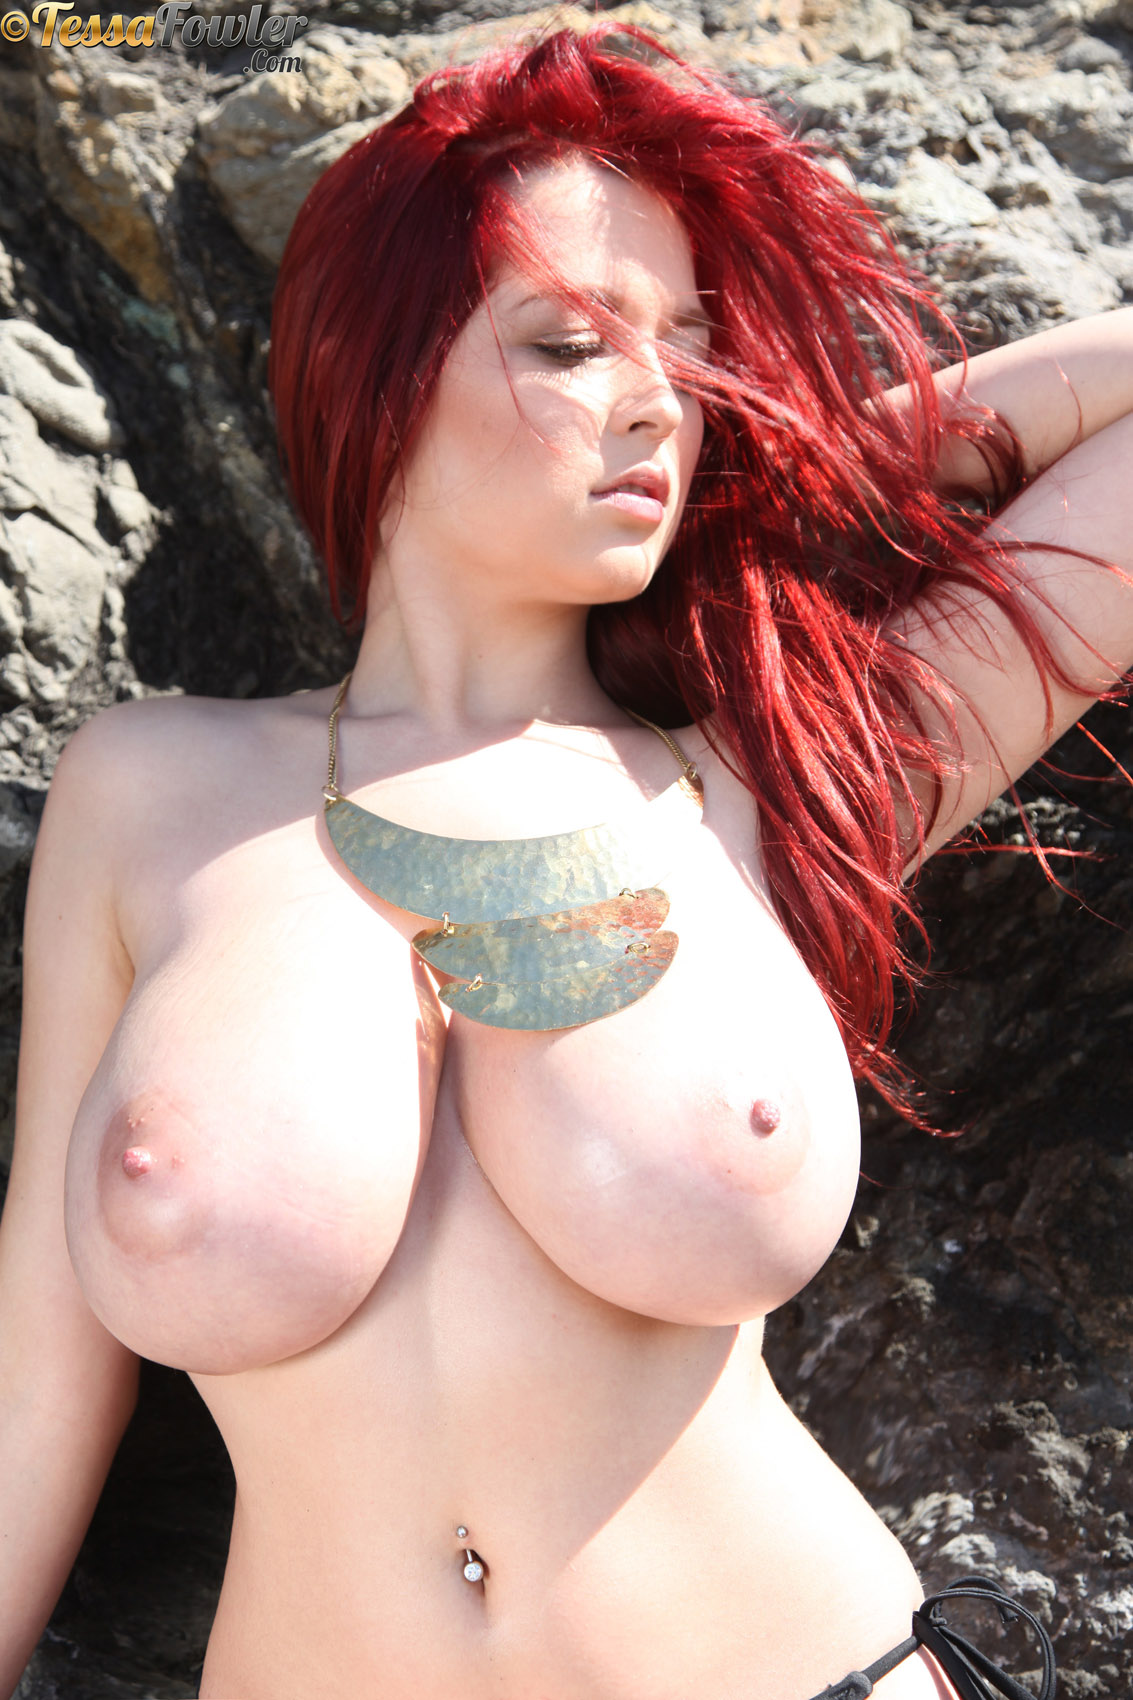 Auburn Hair Great Tits - ... Tessa Fowler Topless Gold